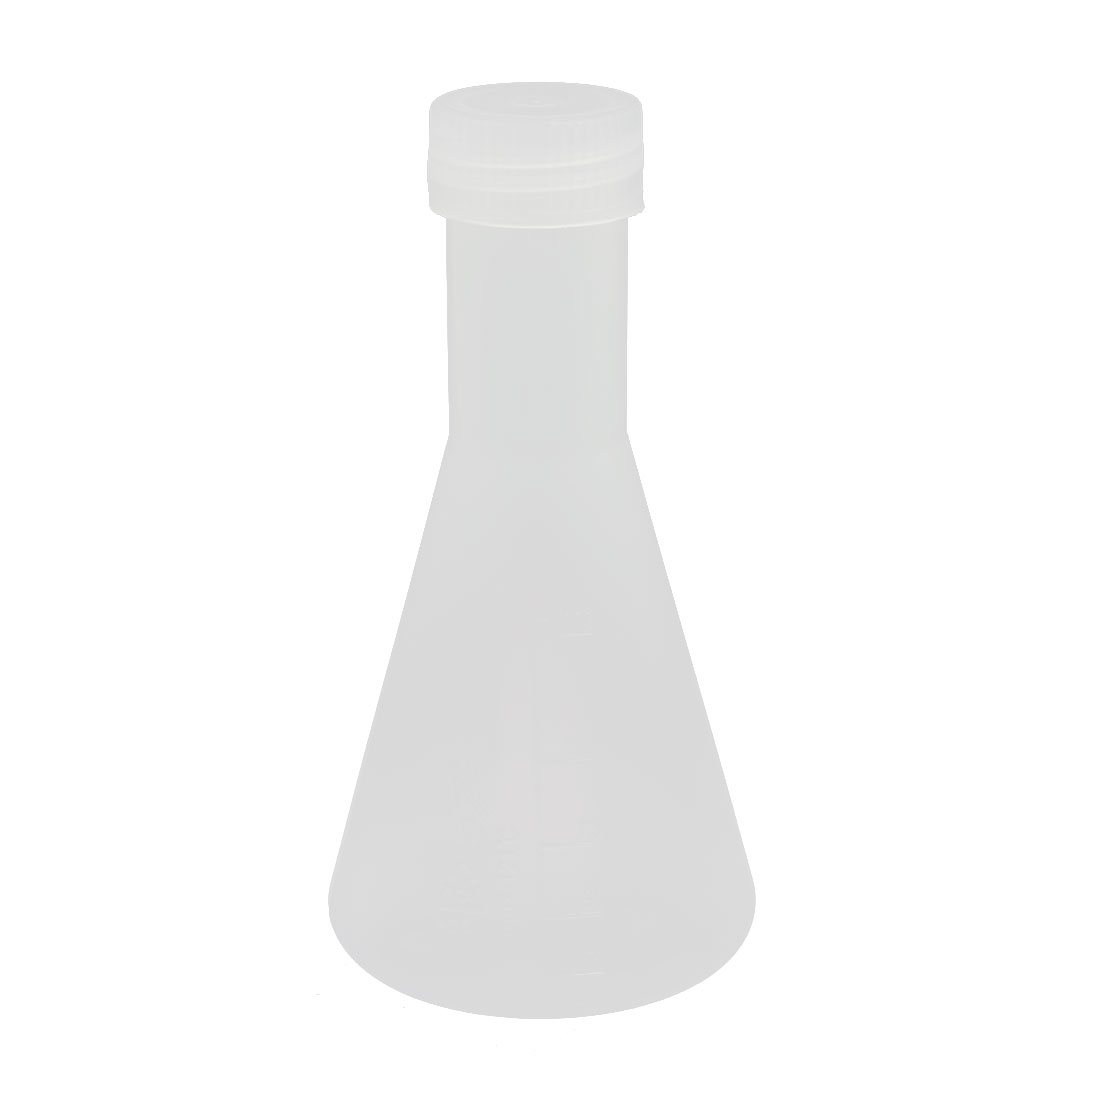 Experiment Laboratory 125ml PP Plastic Cone Measuring Cup Clear